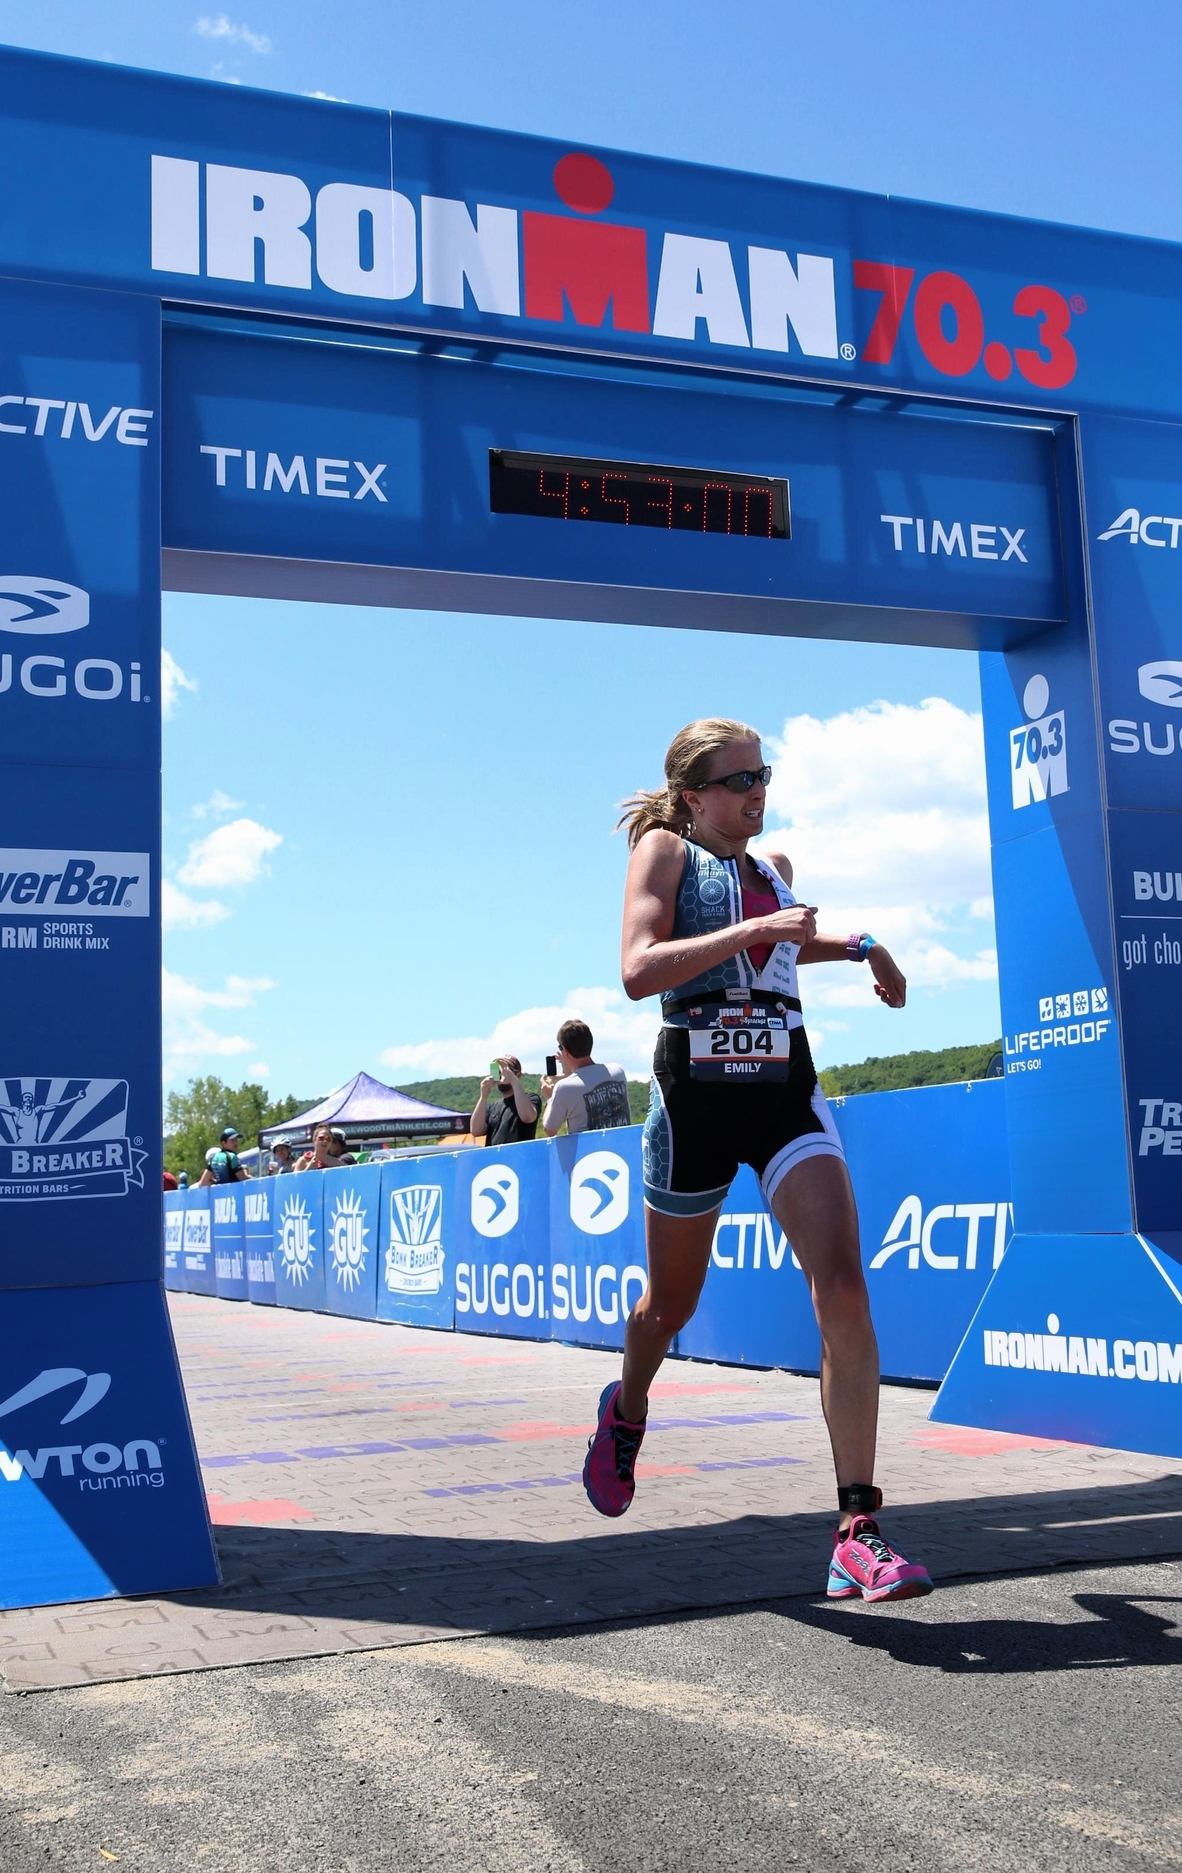 All smiles crossing the finish line.